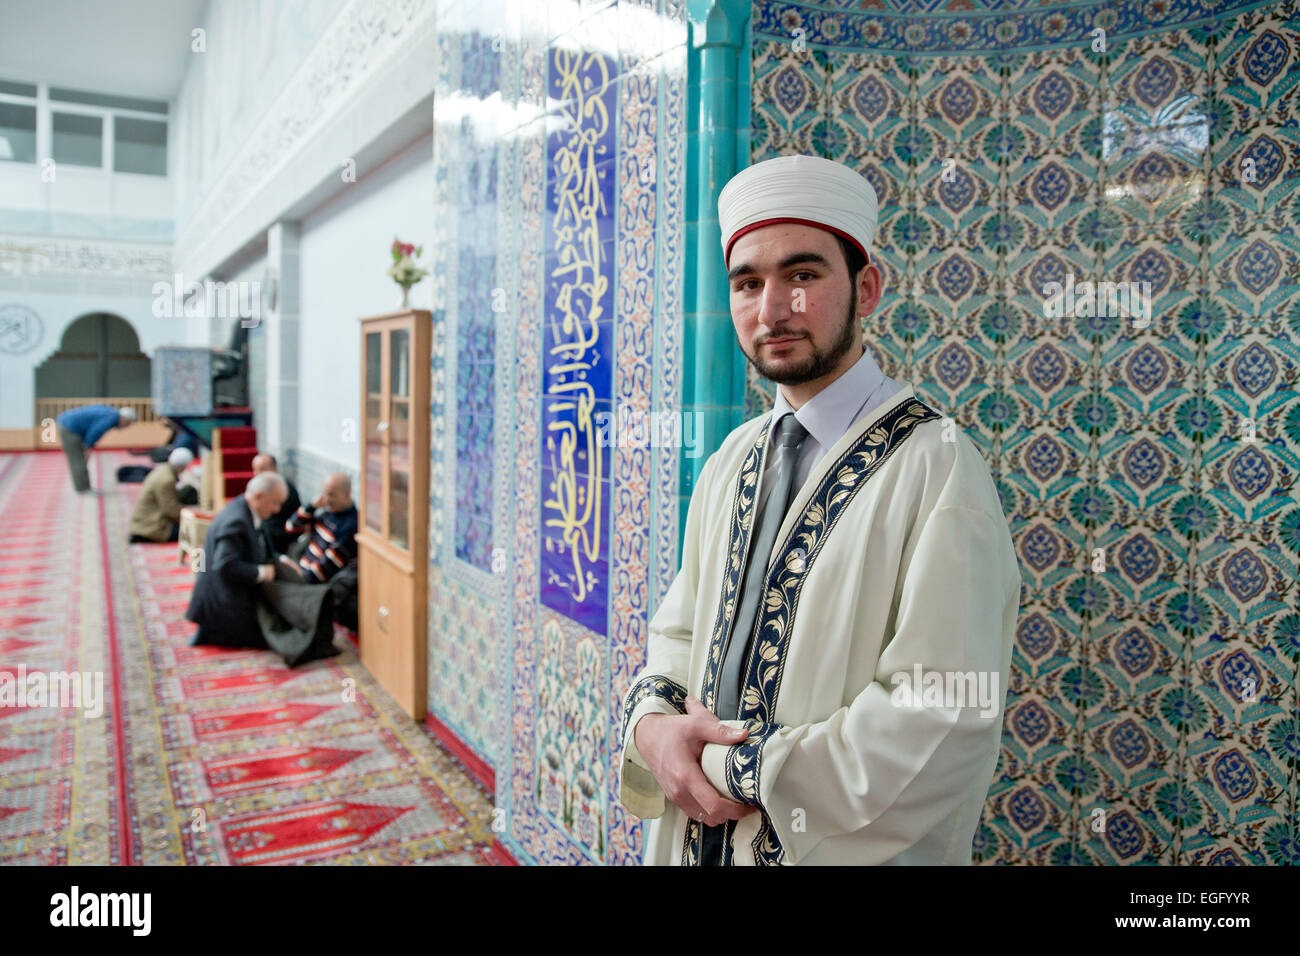 Nuremberg Germany 06th Feb 2015 Imam Talha Dogan Stands In The Stock Photo Alamy